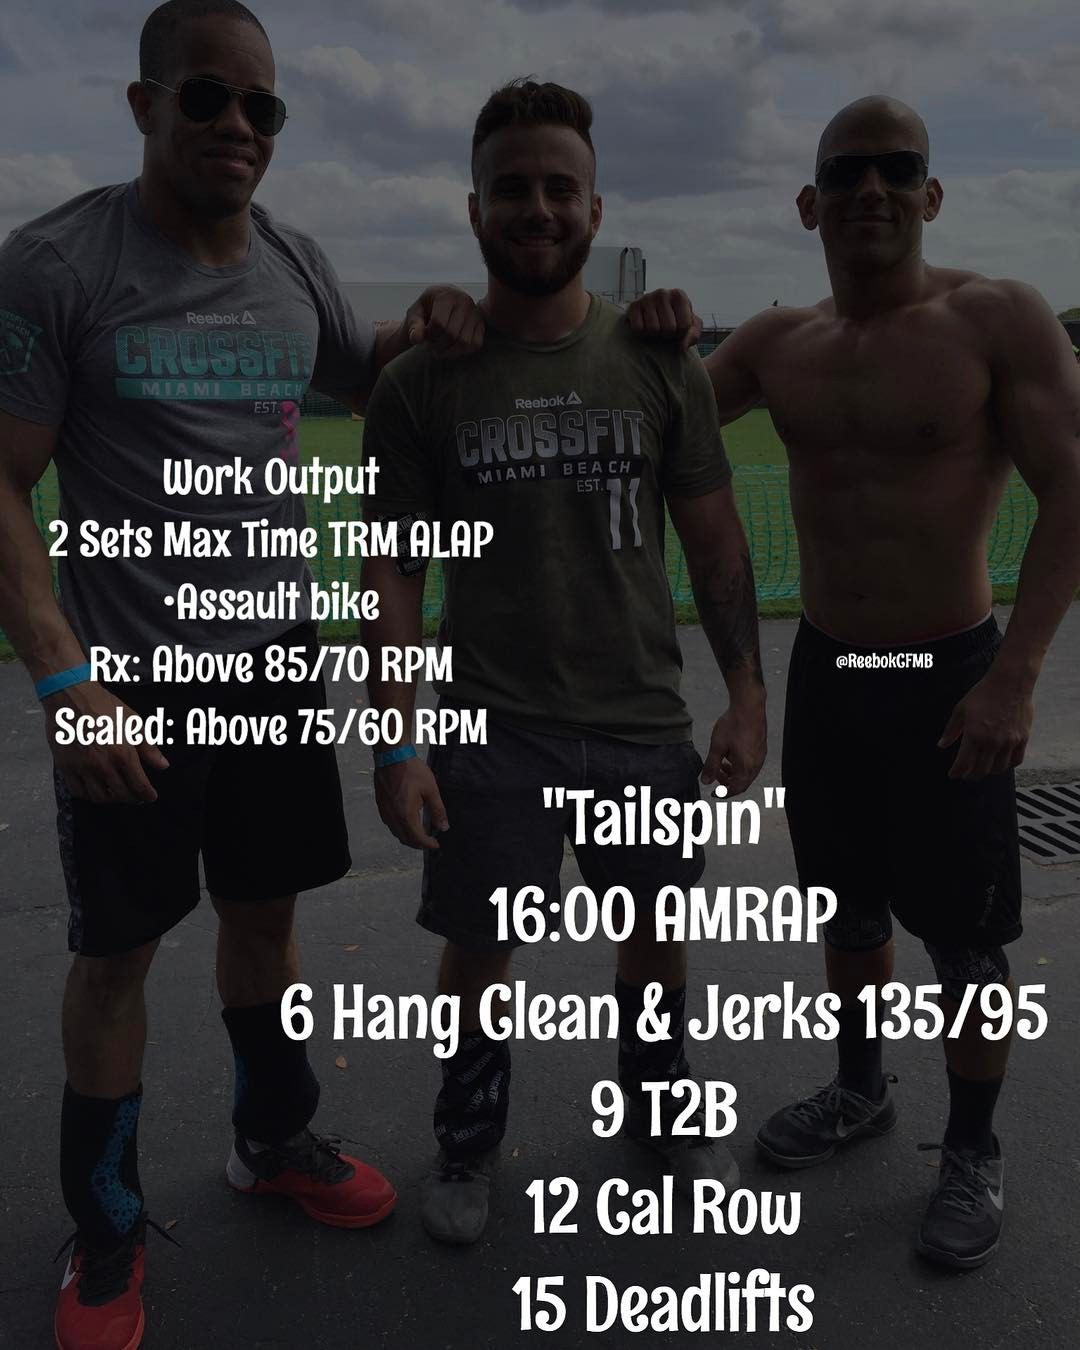 Pin by Maria Amato on Workouts | Crossfit, Crossfit workouts